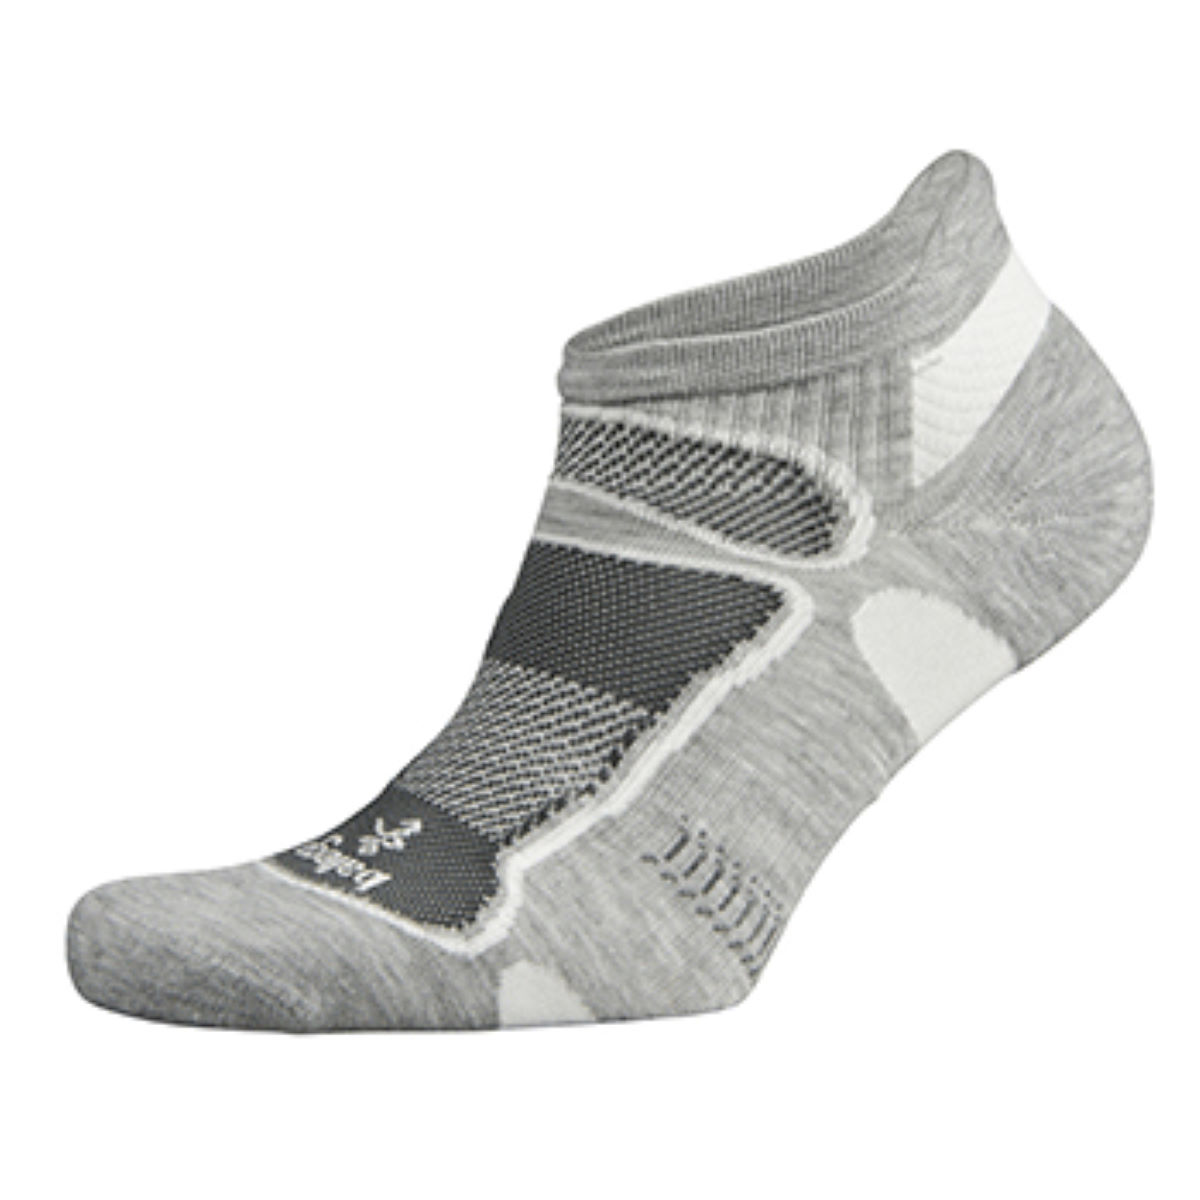 Chaussettes Balega Second Skin Ultralight No Show - S Gris/Blanc